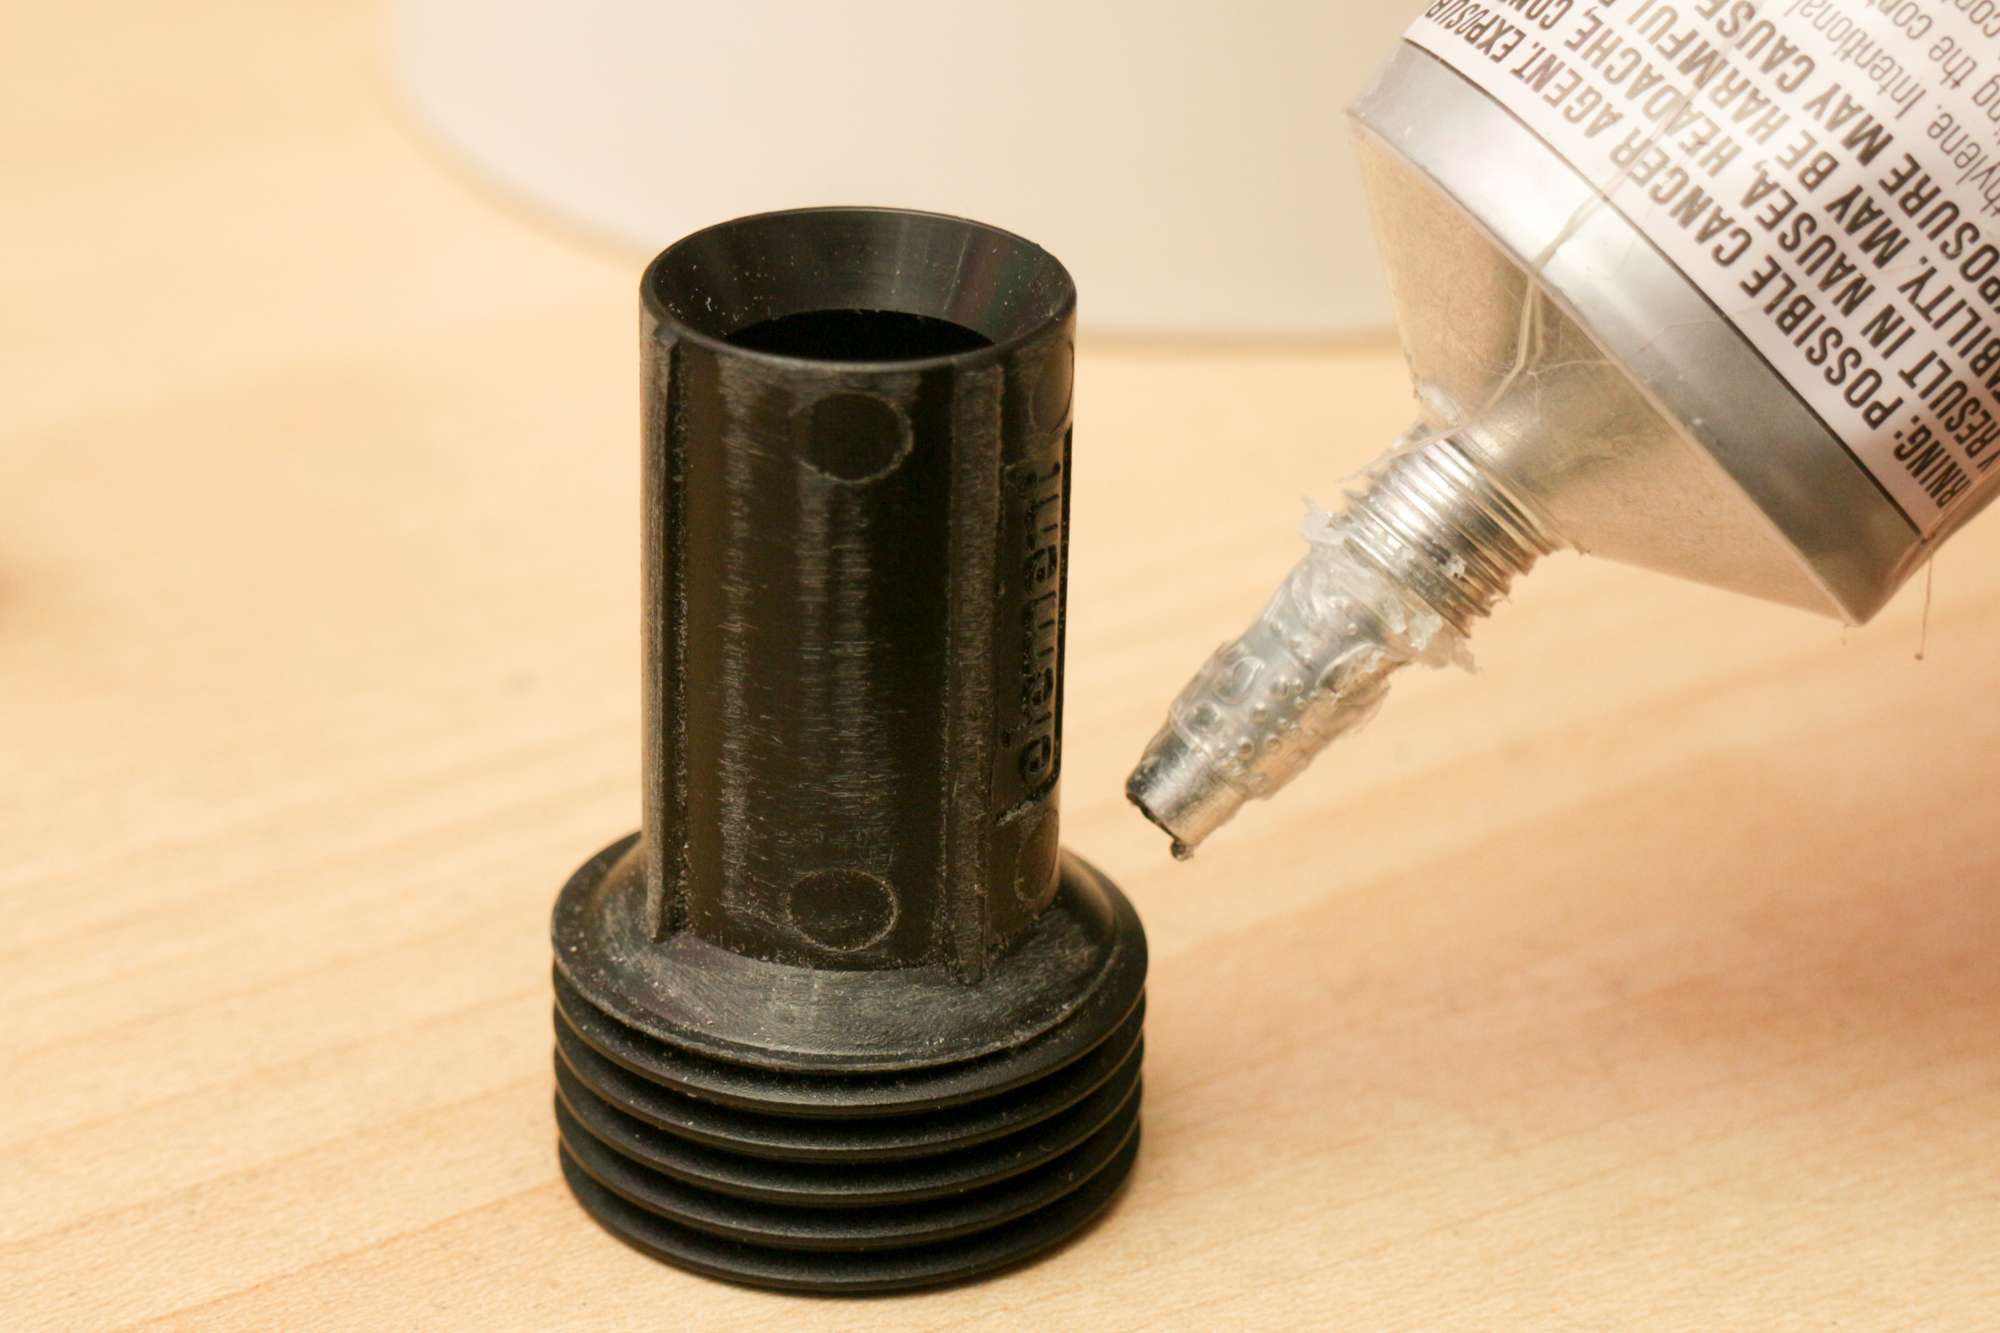 Picture of Gluing the Connector